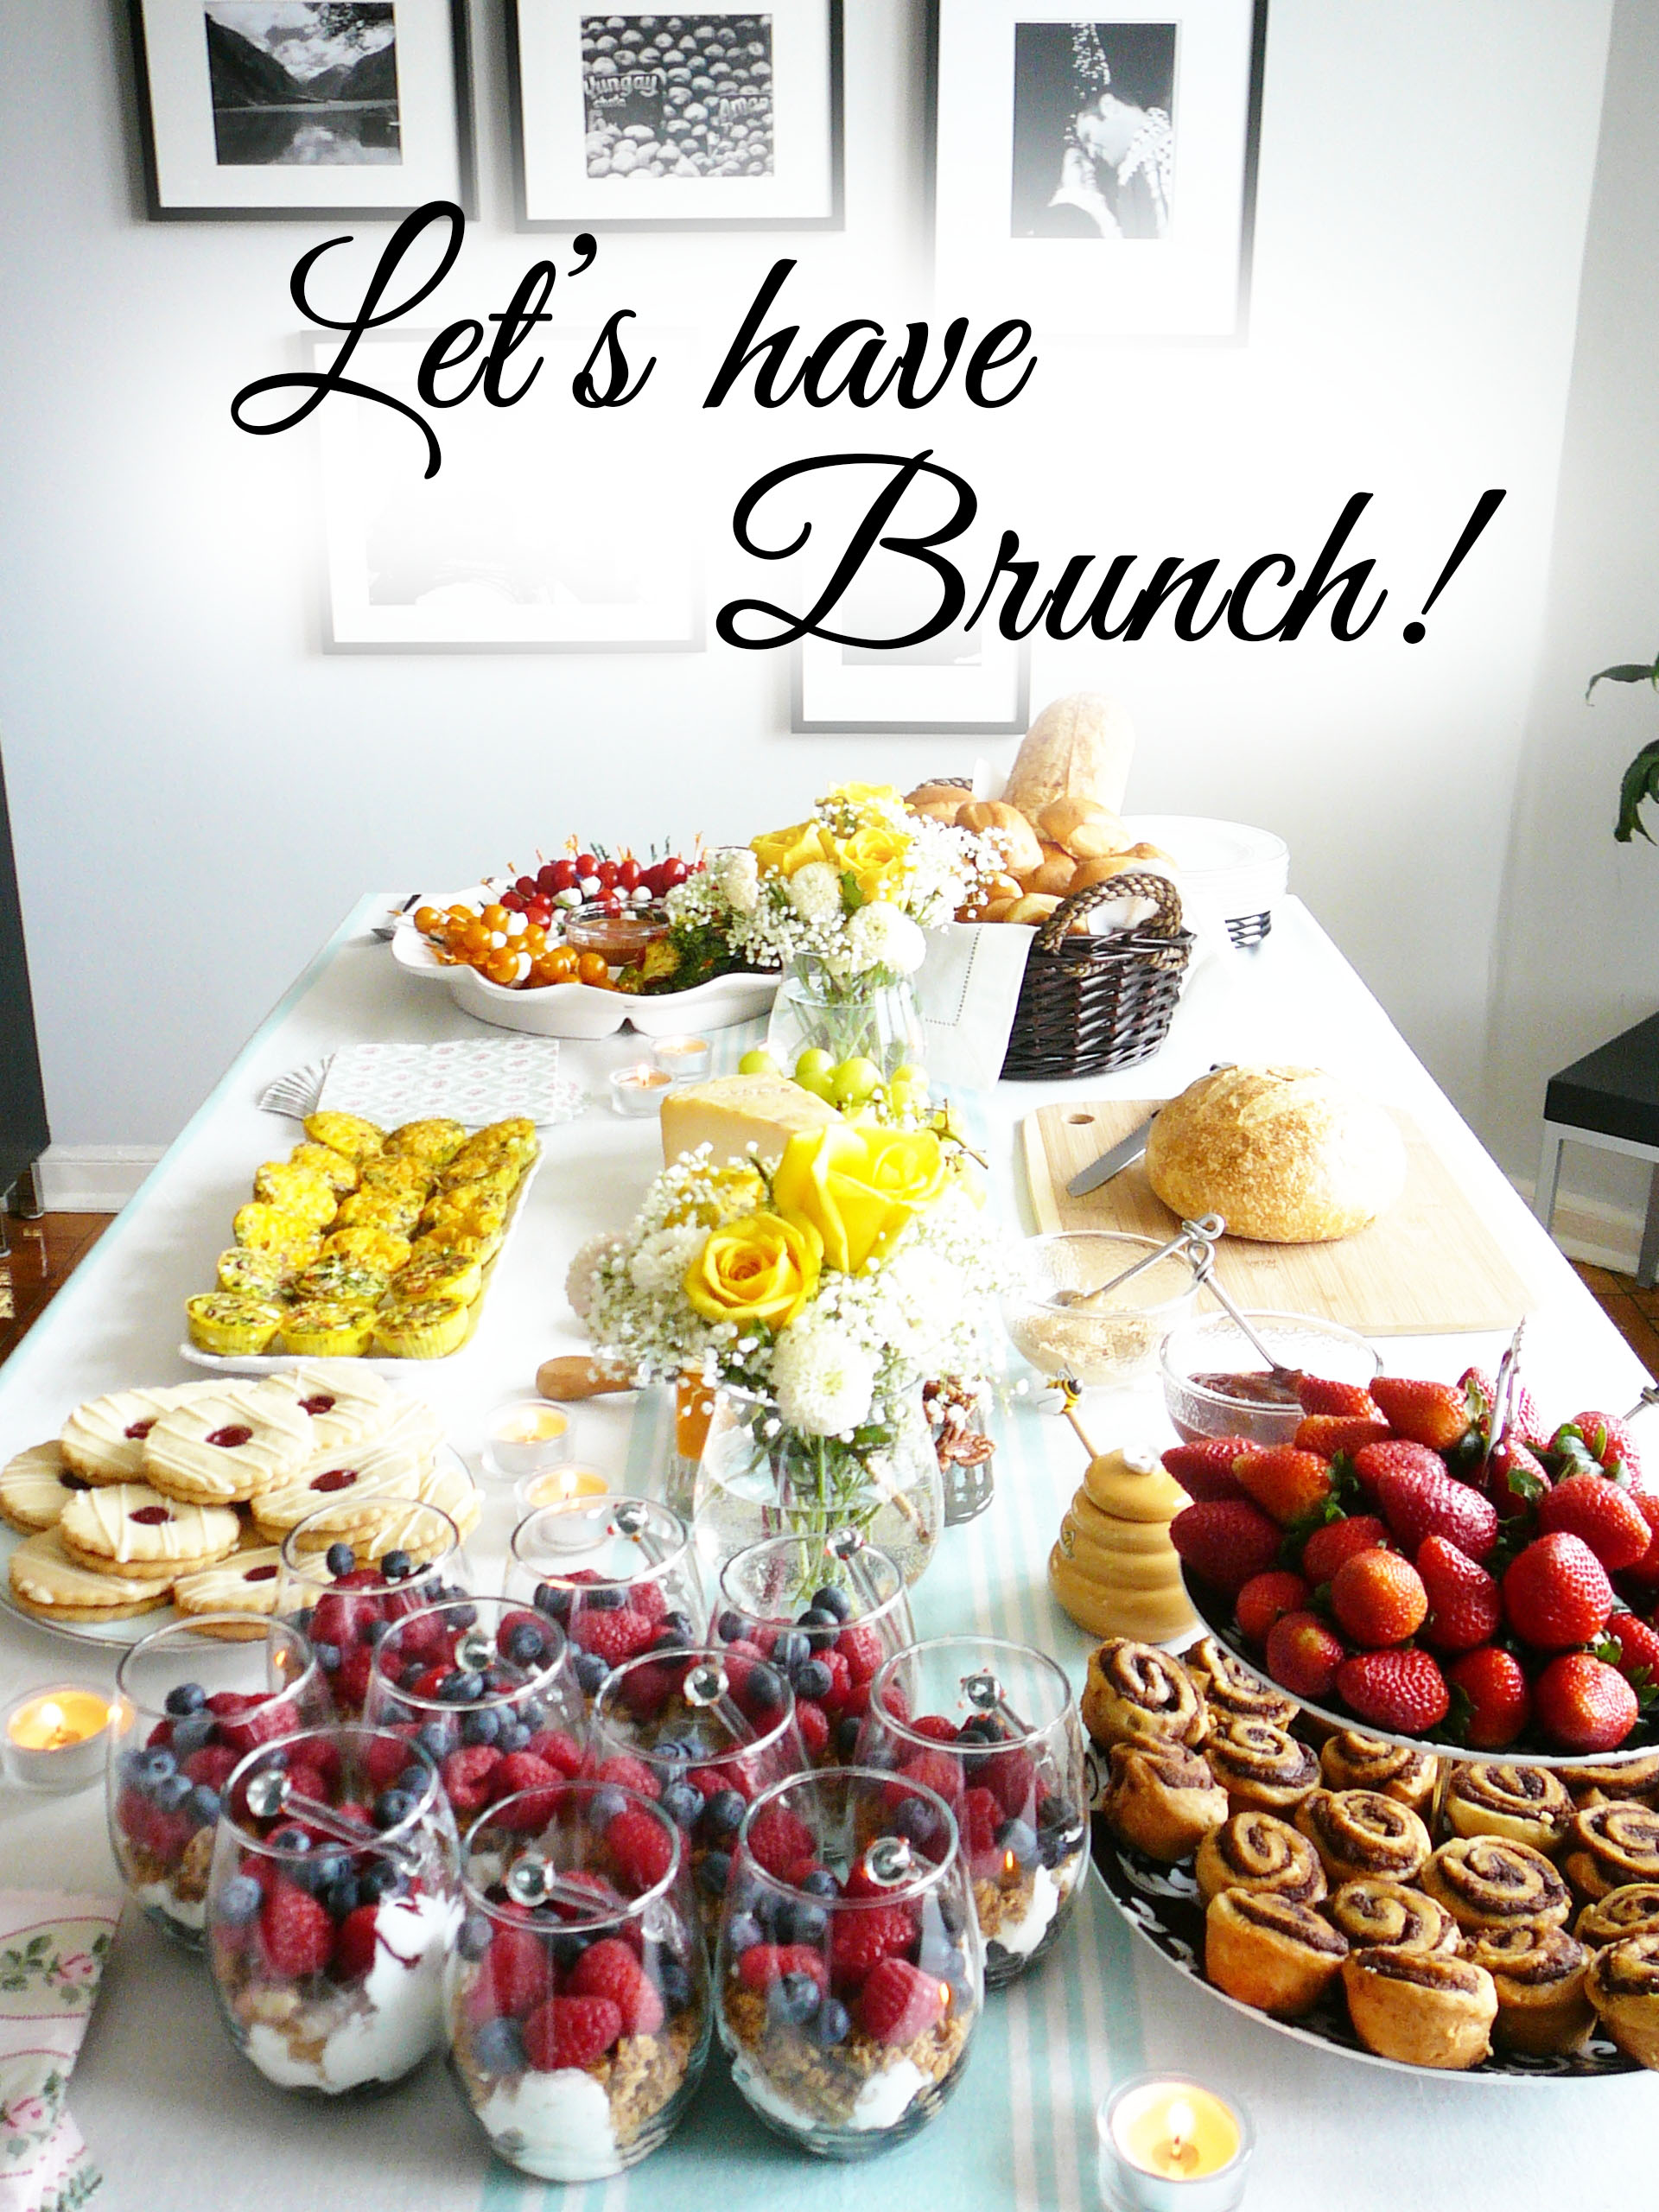 brunch-splendor-styling-fab-hostess-dc-decorator-designer-mariella-cruzado.jpg